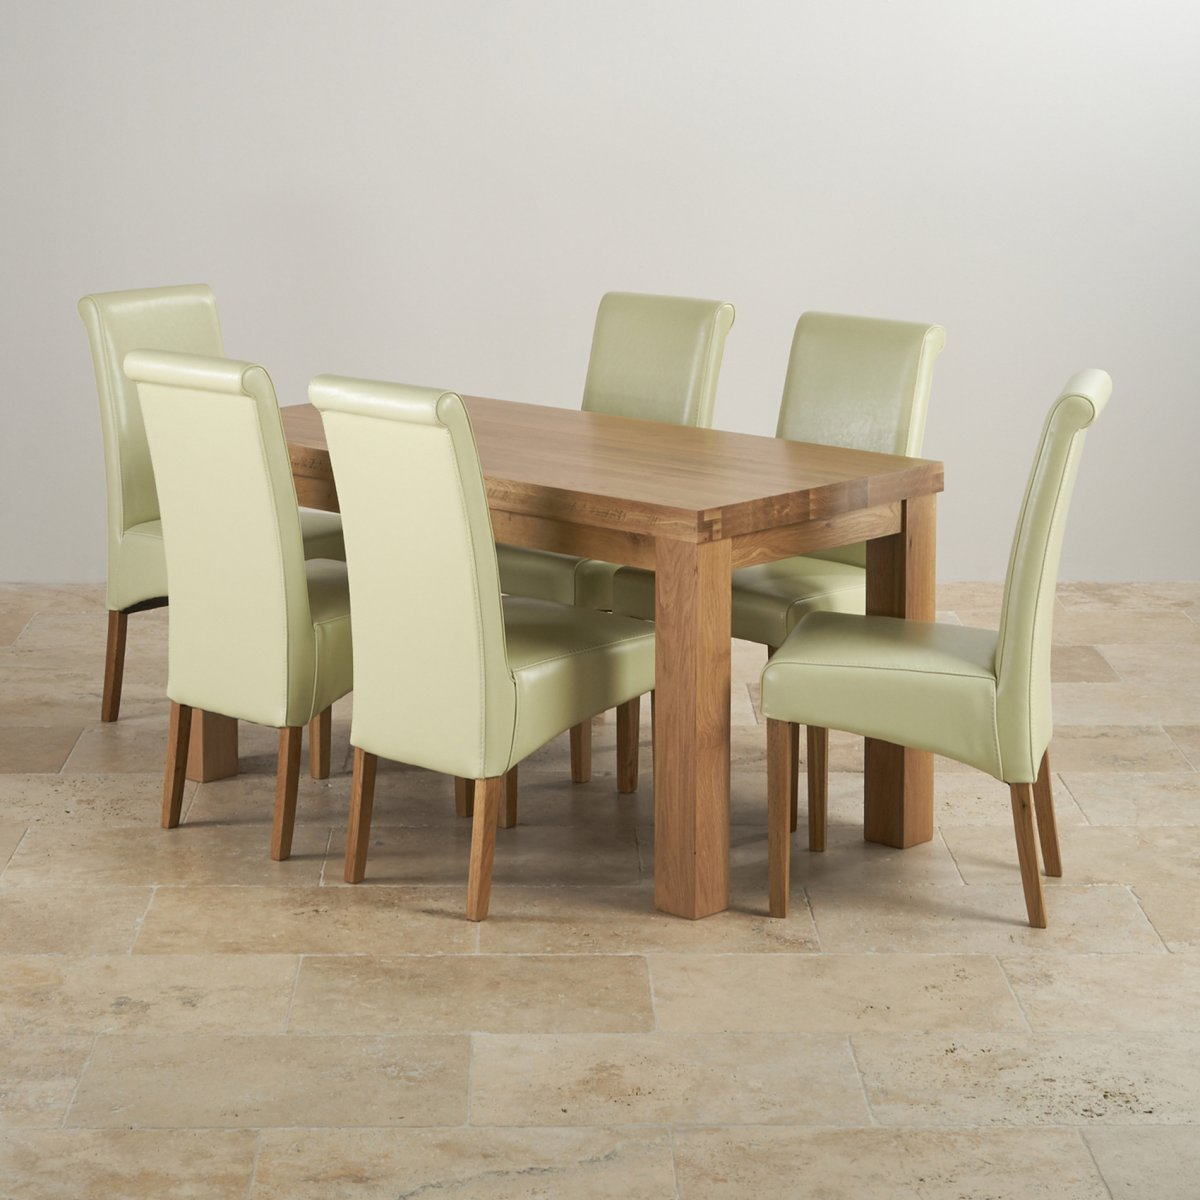 suede dining table chairs wobble chair chiropractic chunky set in oak 43 6 cream leather